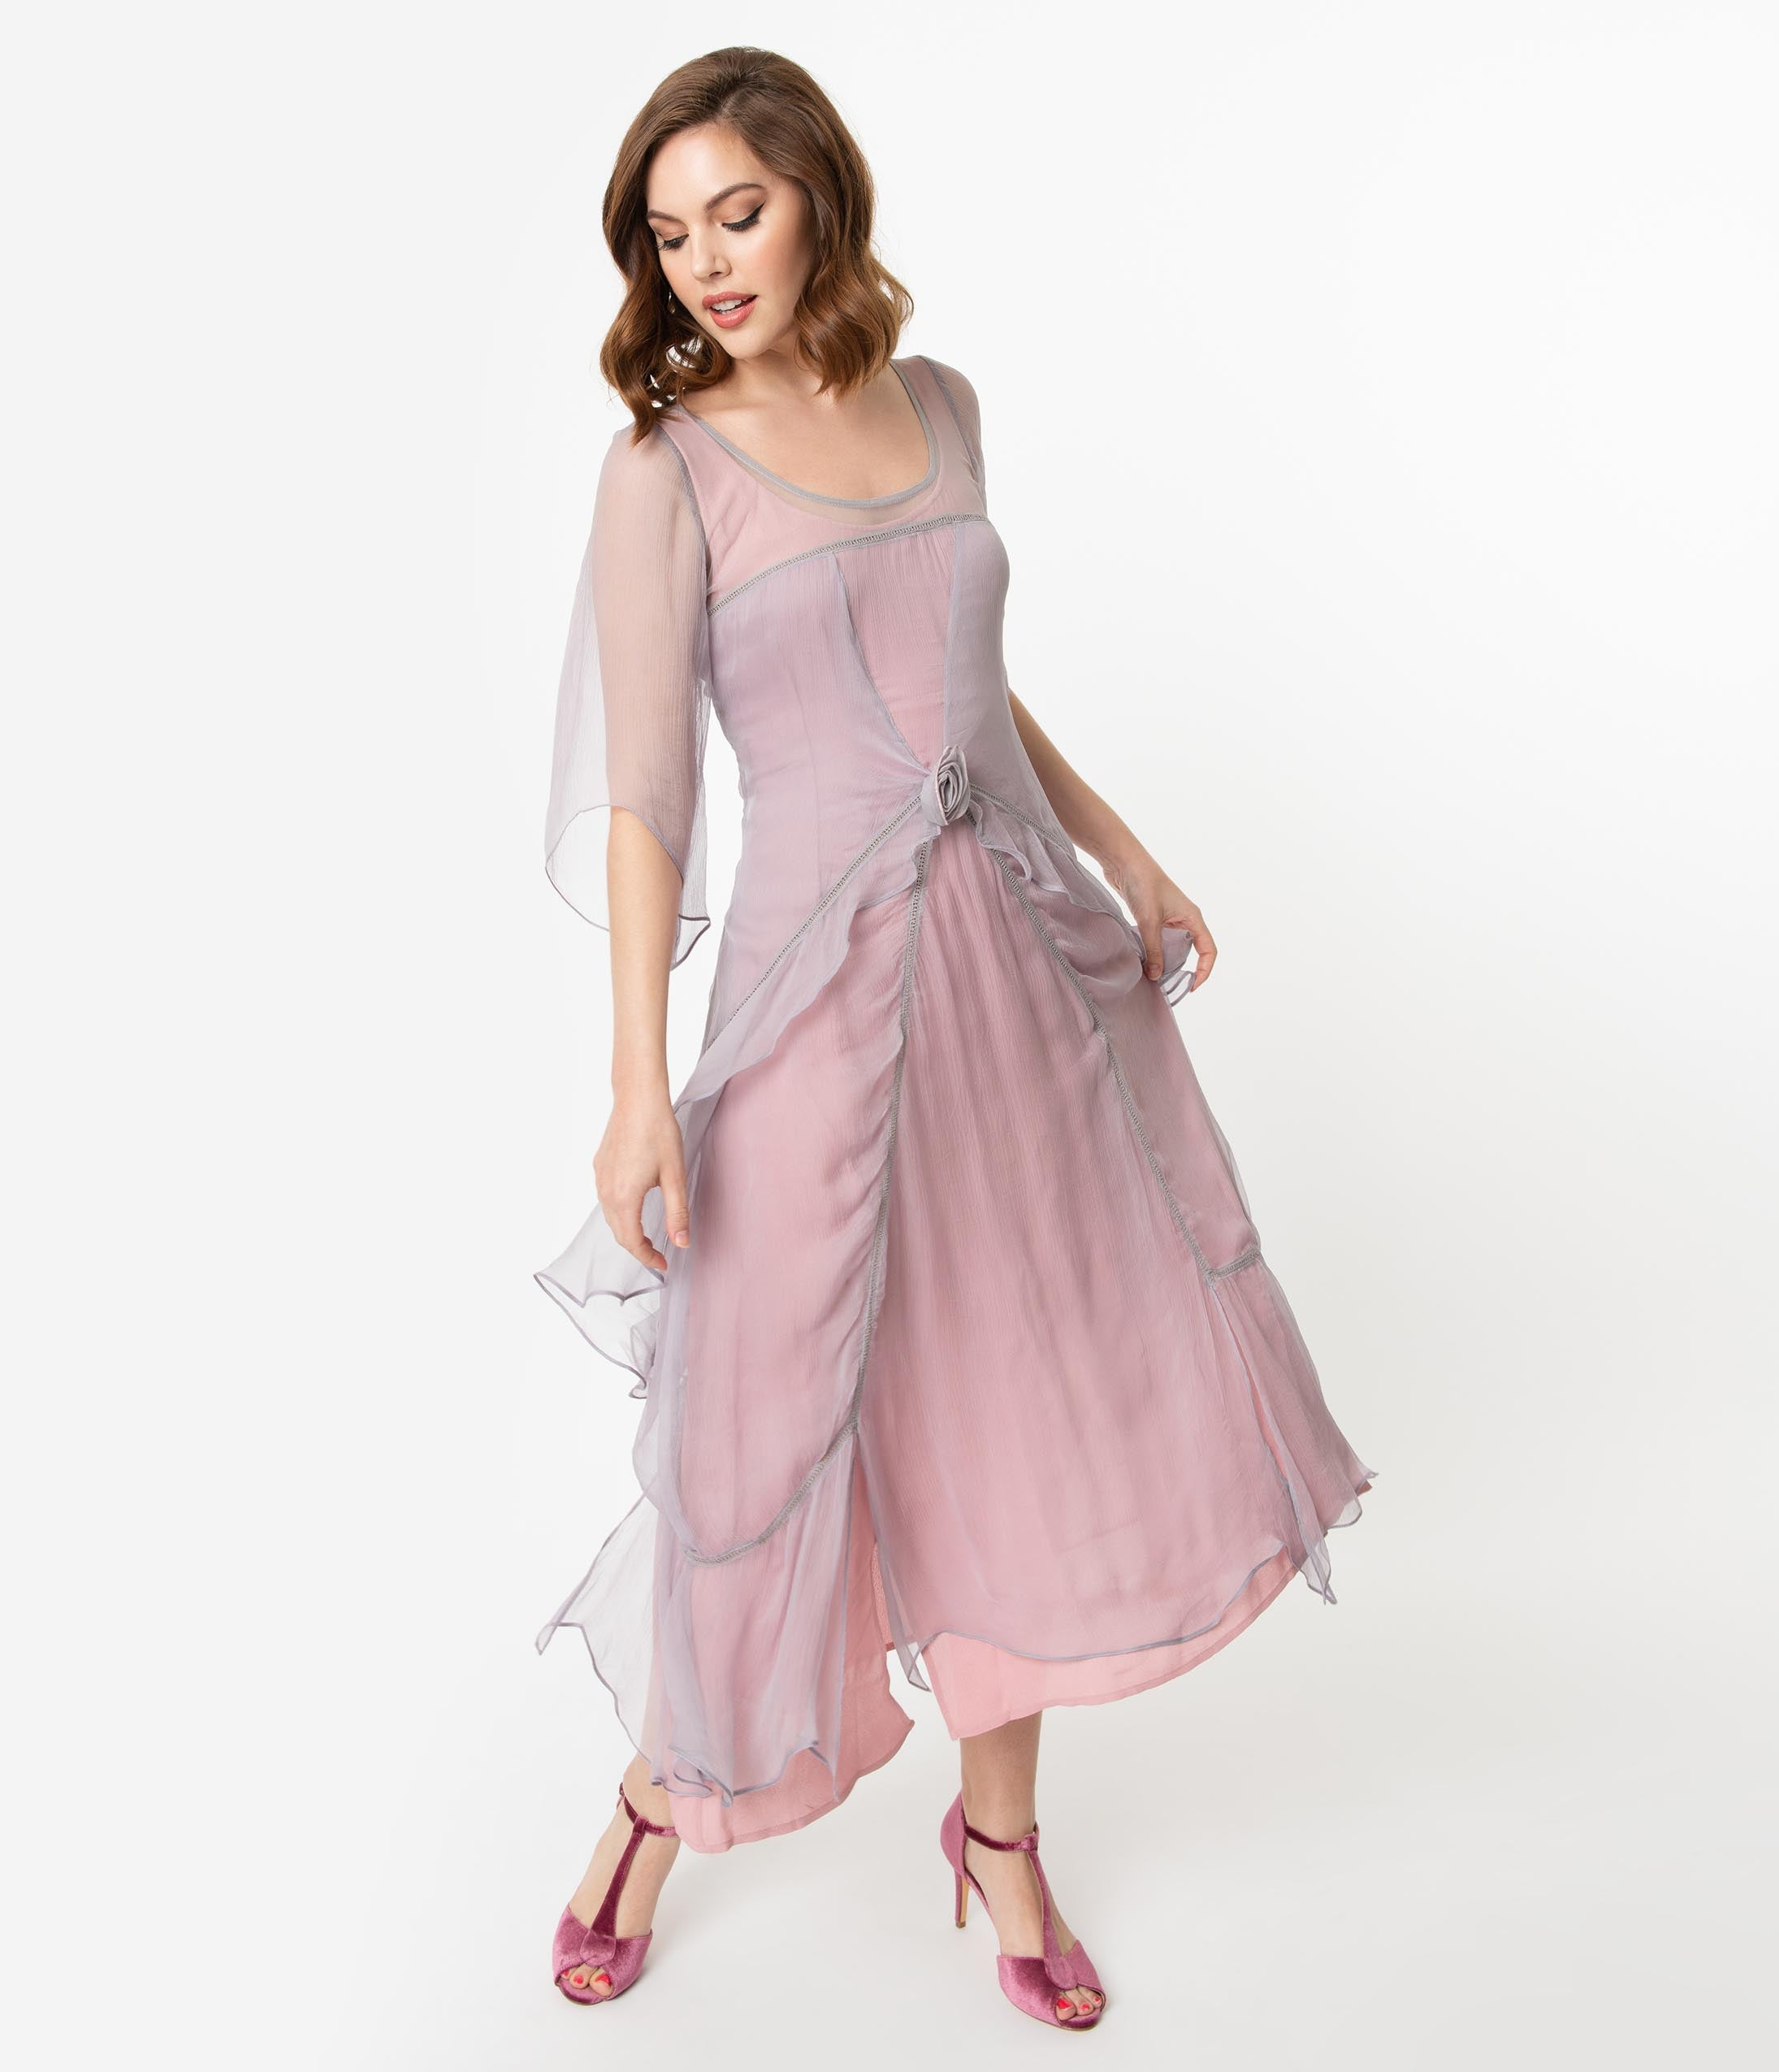 Best 1920s Prom Dresses – Great Gatsby Style Gowns Vintage Style Mauve  Pink Chiffon Sleeved Edwardian Flapper Dress $242.00 AT vintagedancer.com